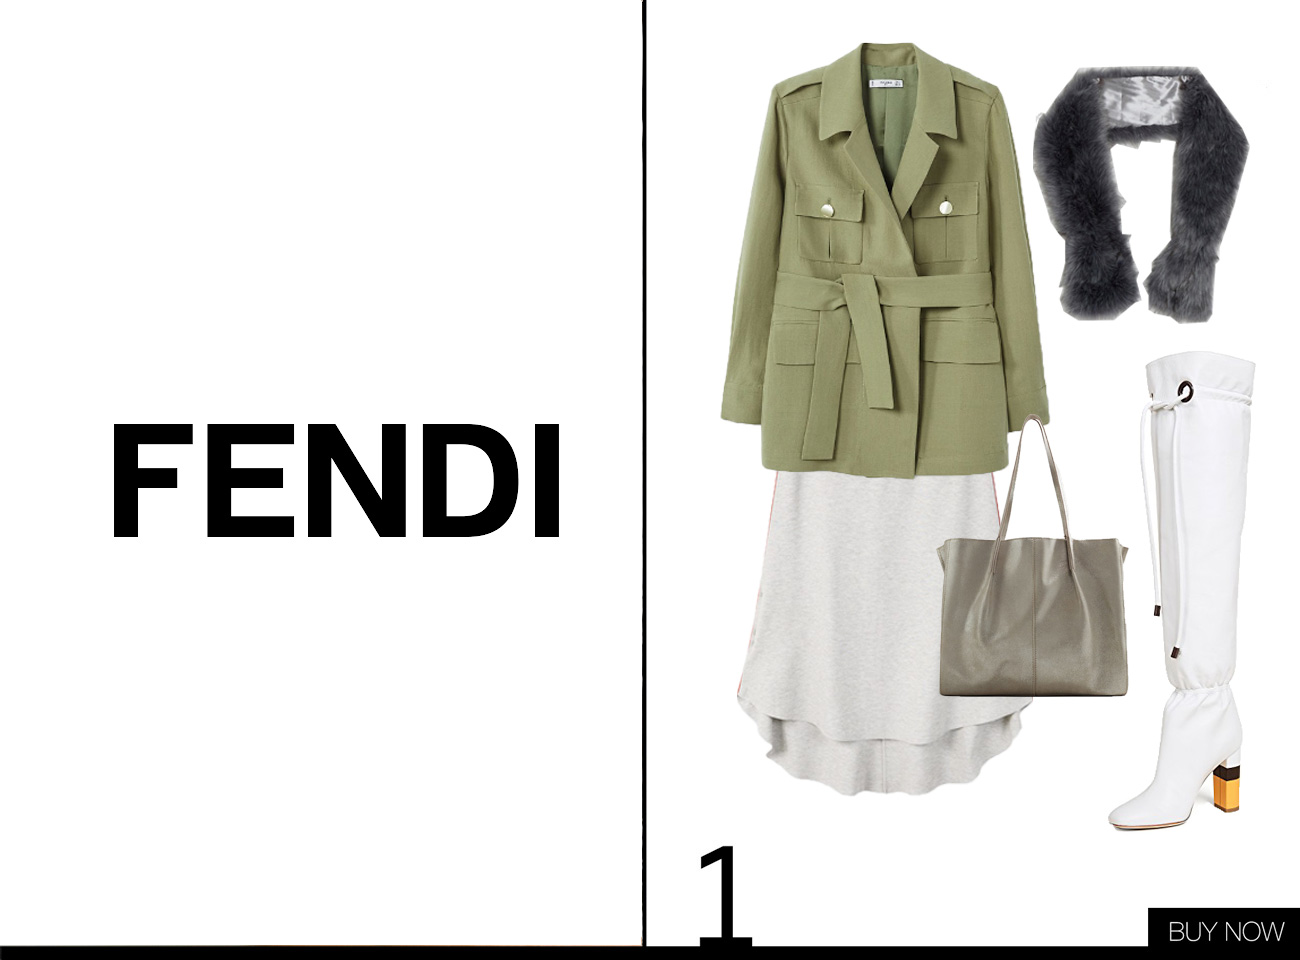 Fendi Herbst Winter Kollektion 18/19 nachgestylt